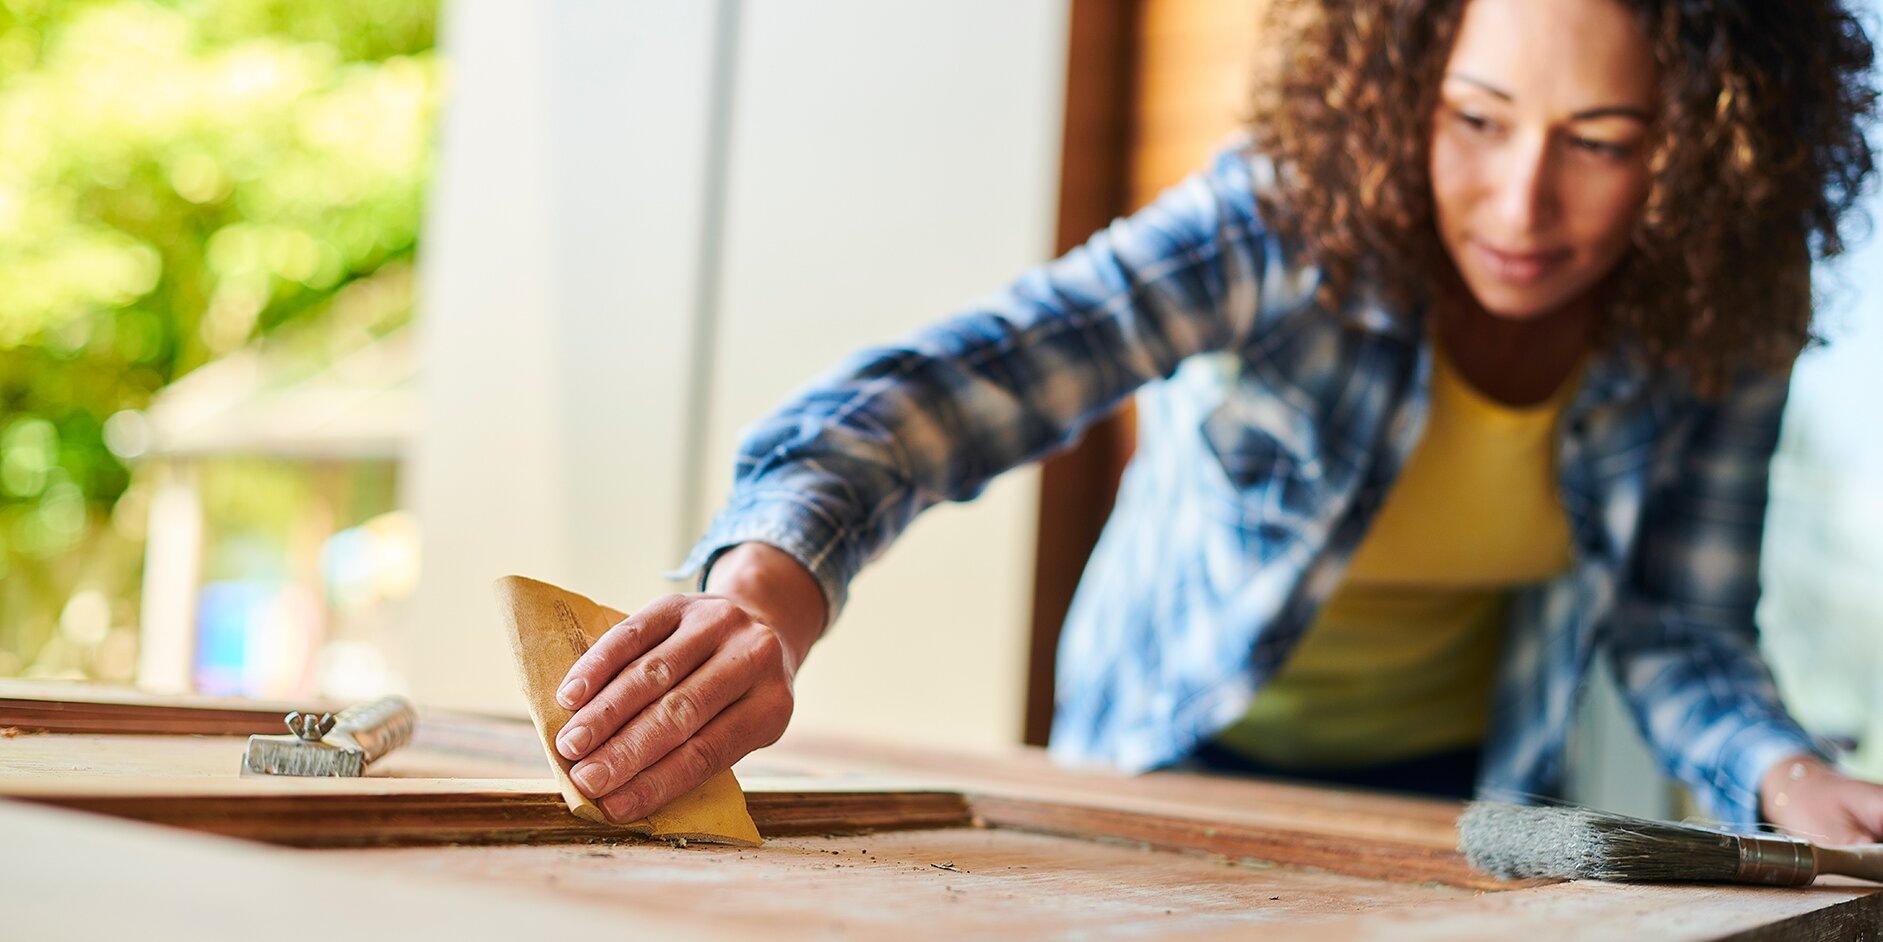 5 DIY Home Improvement Projects to Try This Summer